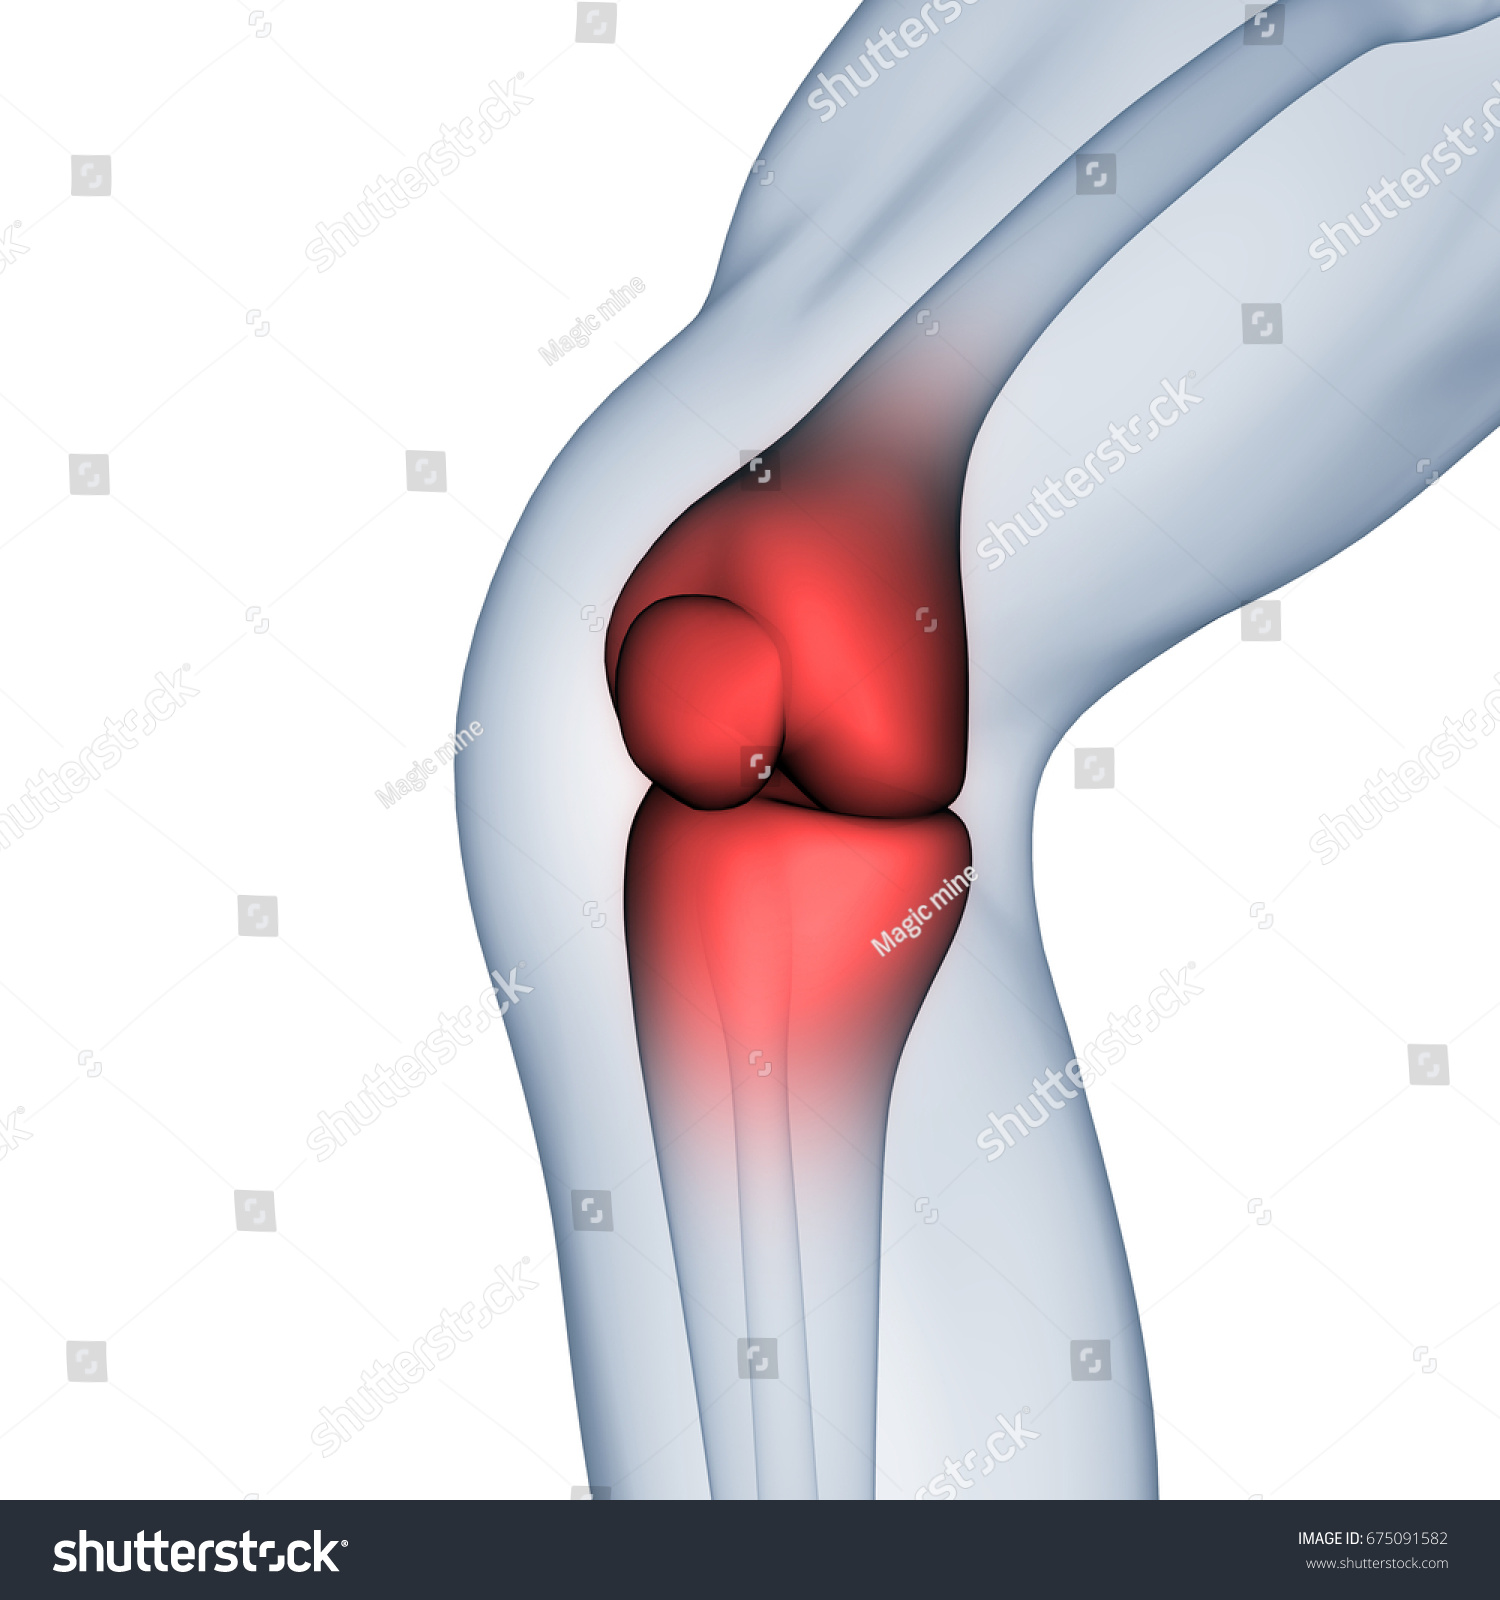 Human Body Bone Joint Pains Knee Stock Illustration 675091582